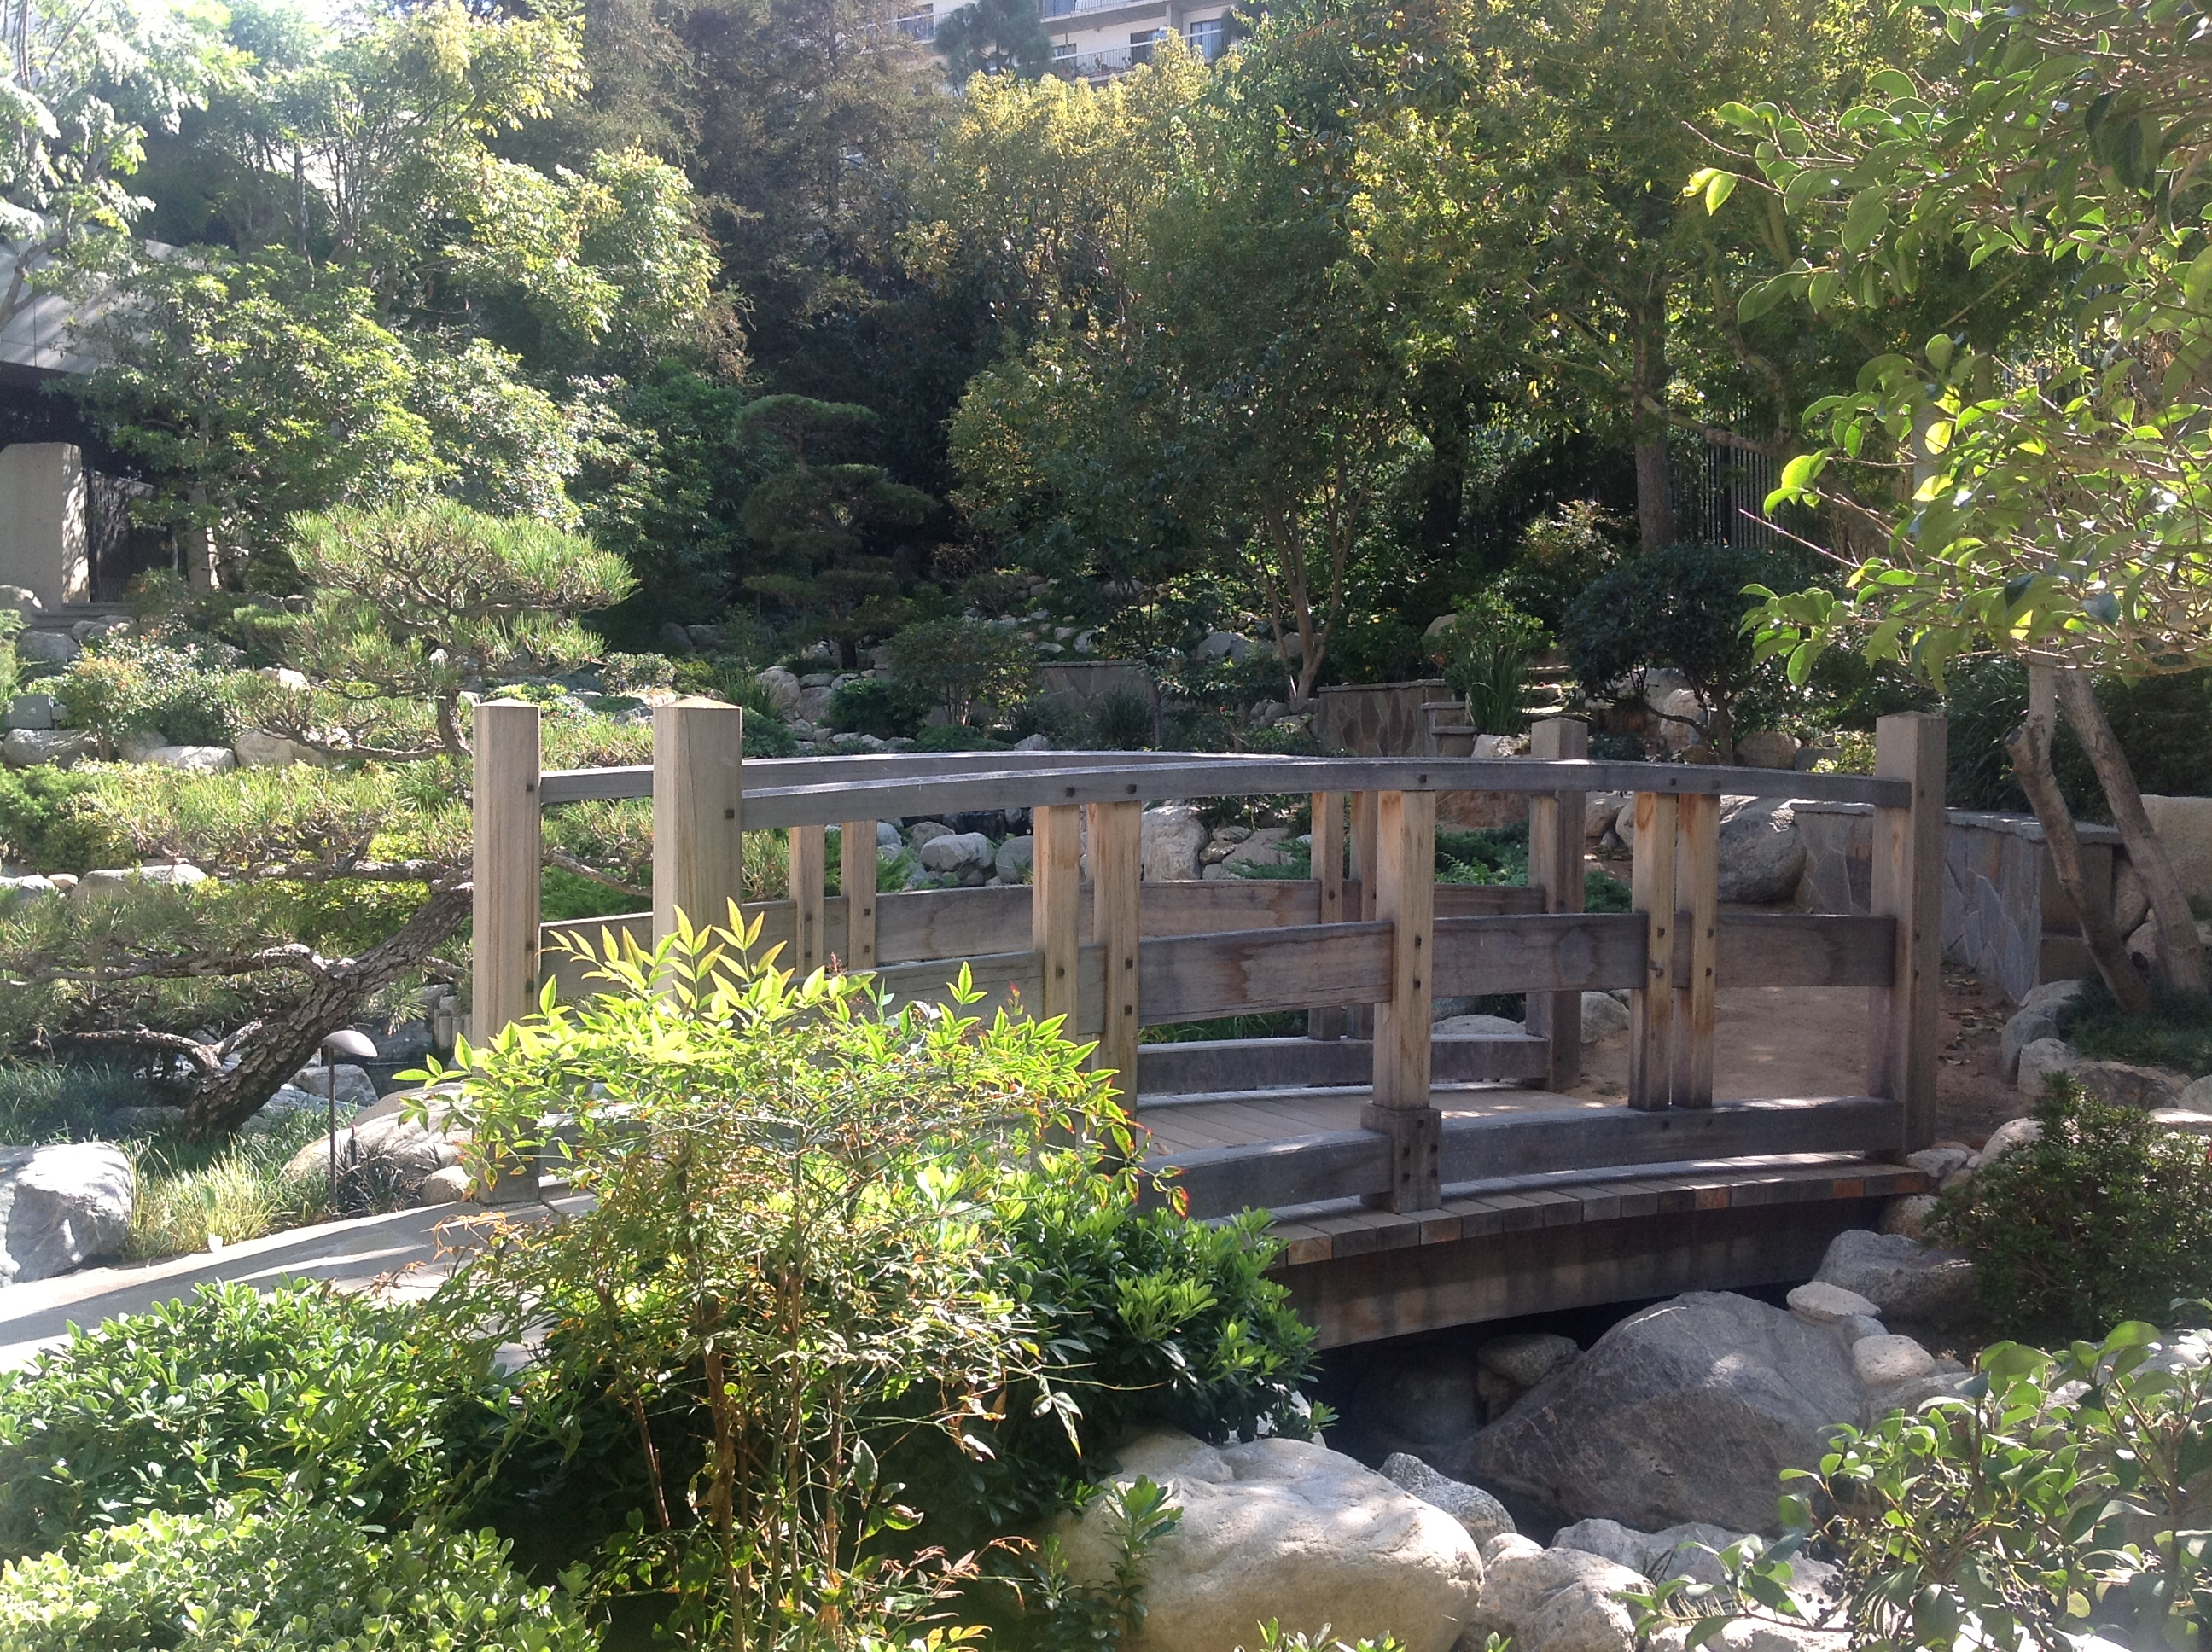 Short Walk In Los Angeles Yields Several Gardens U S Japanese Gardens